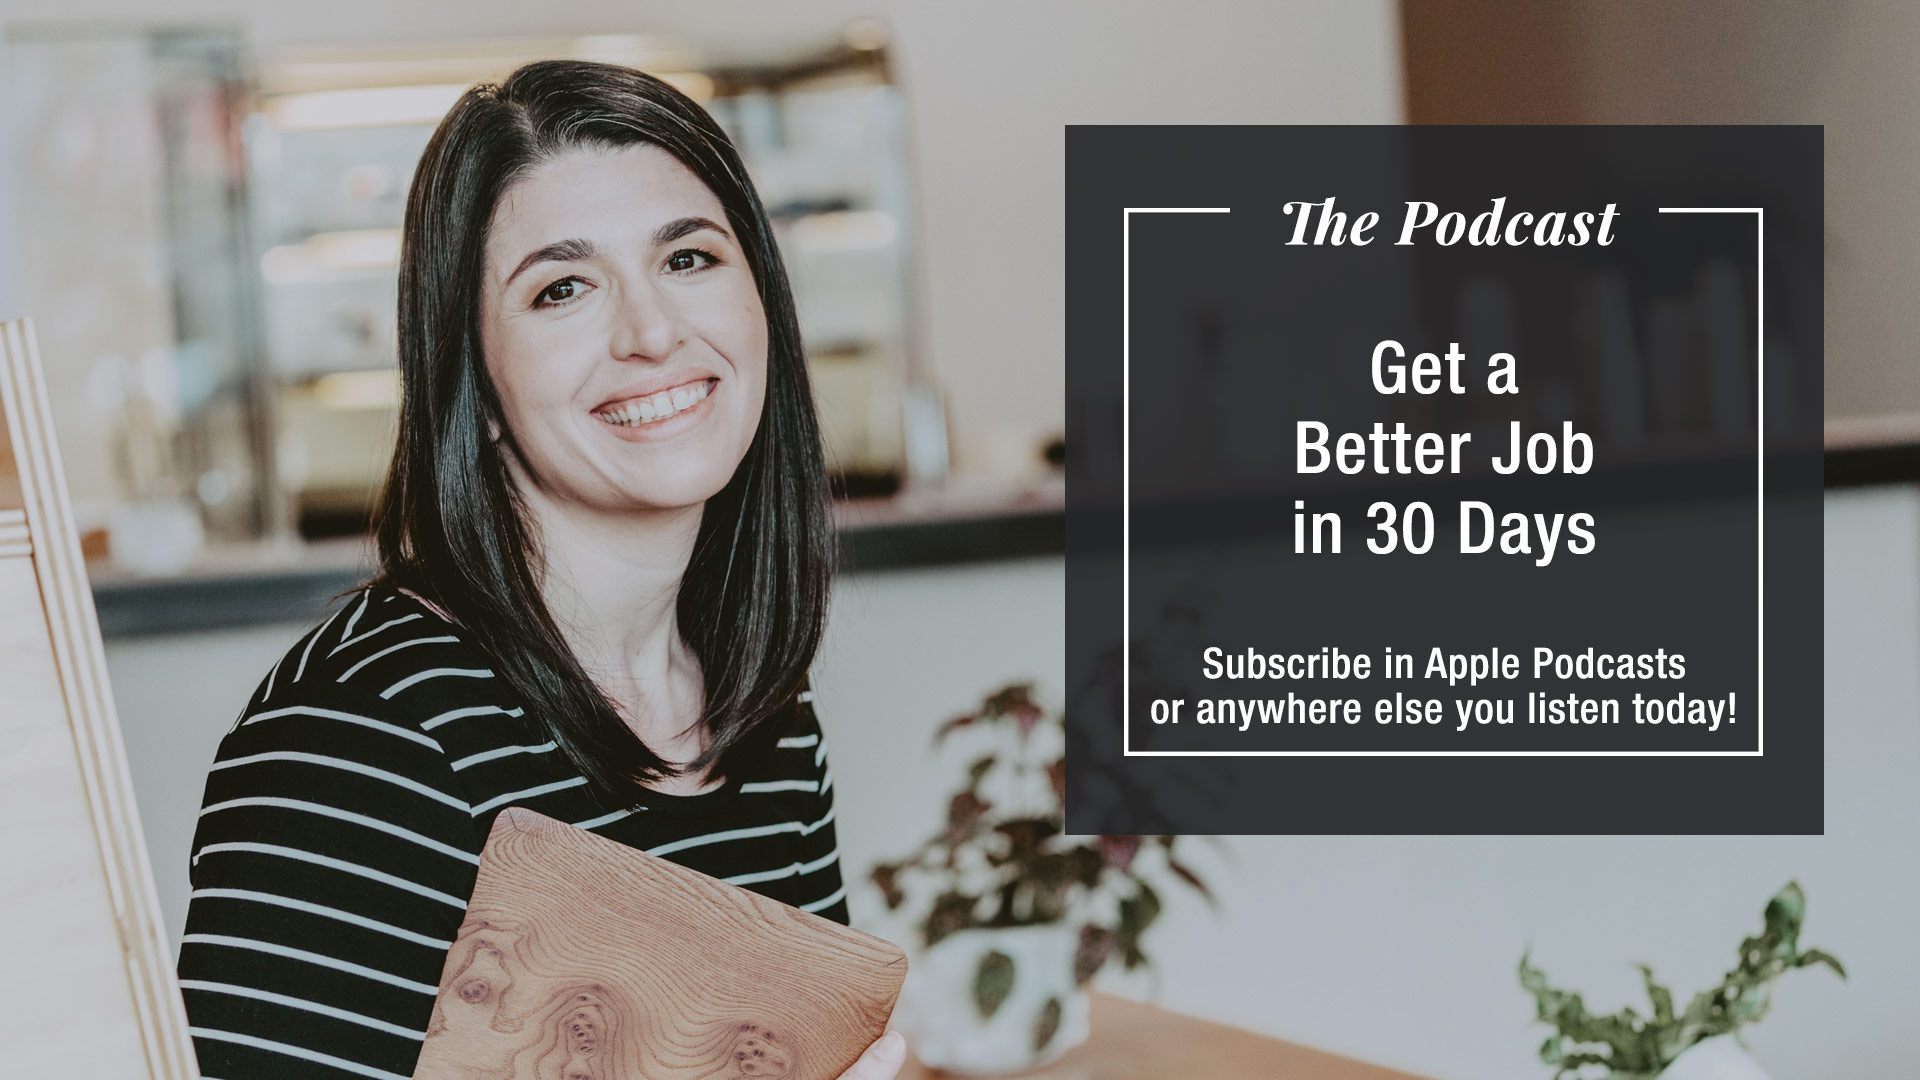 Get a Better Job in 30 Days with Natalie Fisher